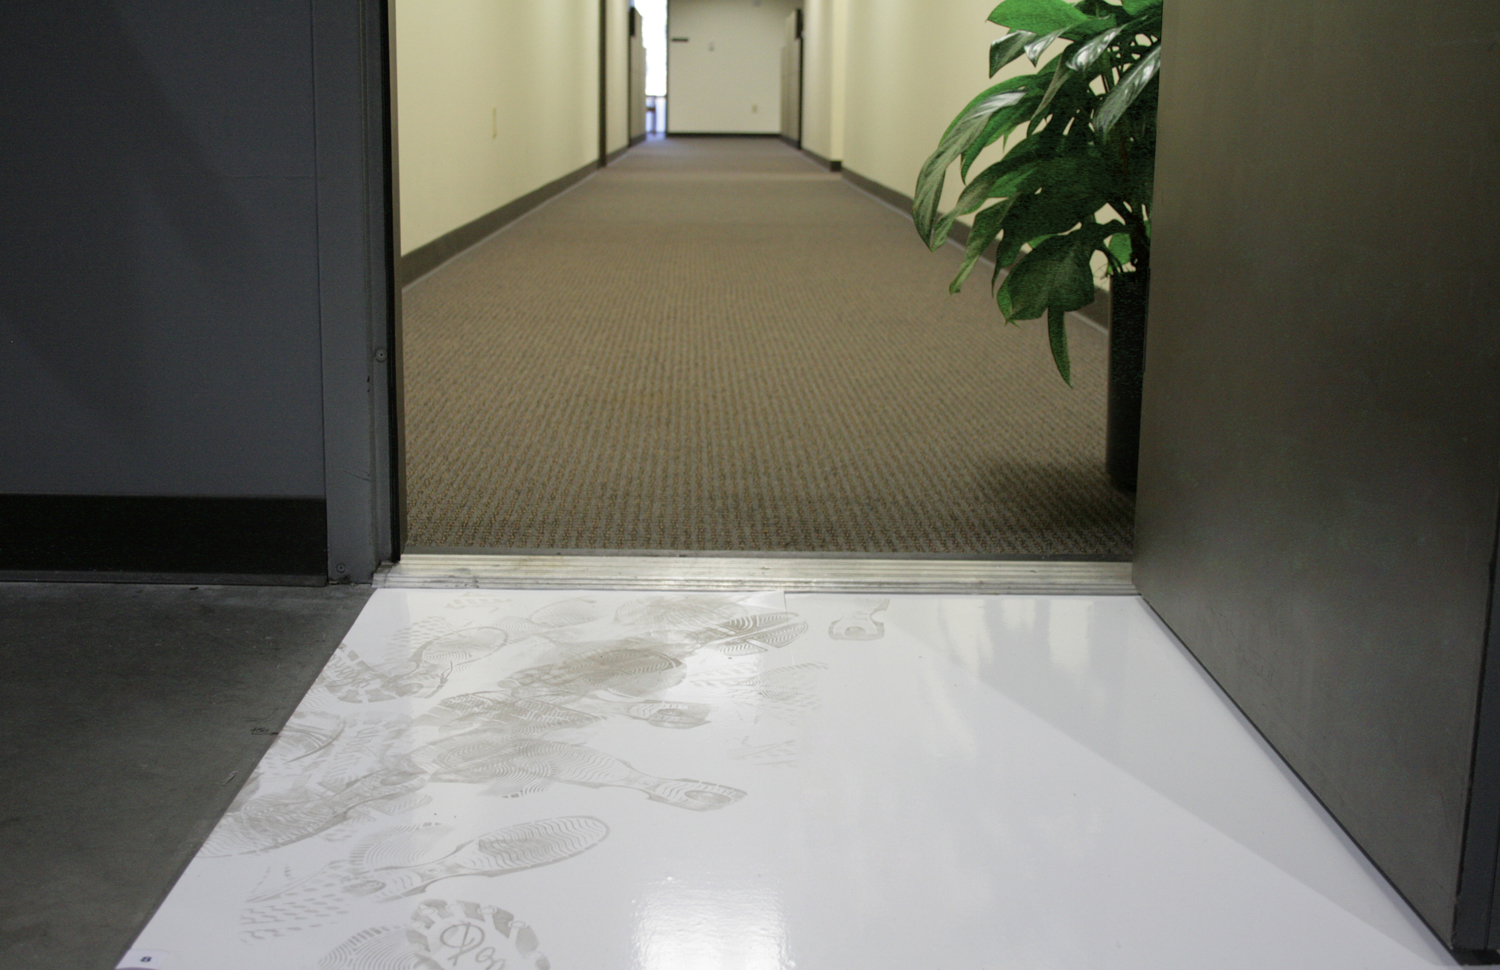 Introducing our Clean Room Matting